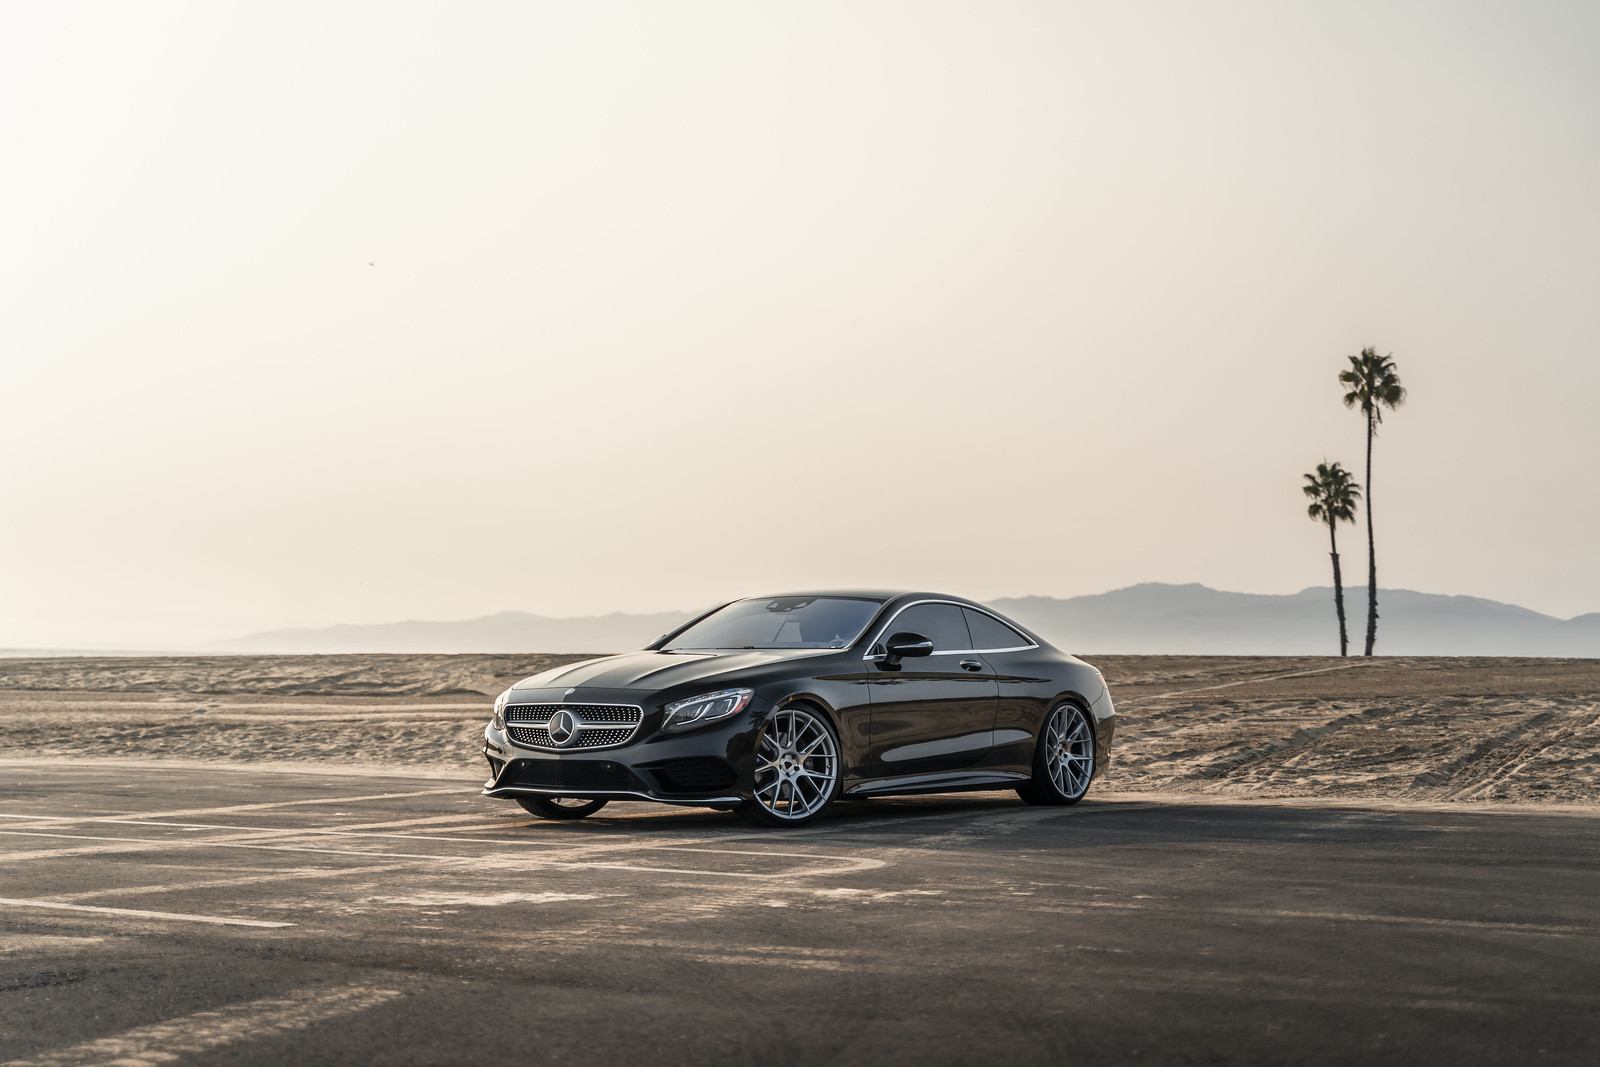 2020_Mercedes_Benz_S550_Coupe_4matic_BDF18_Brusehd_Silver_2